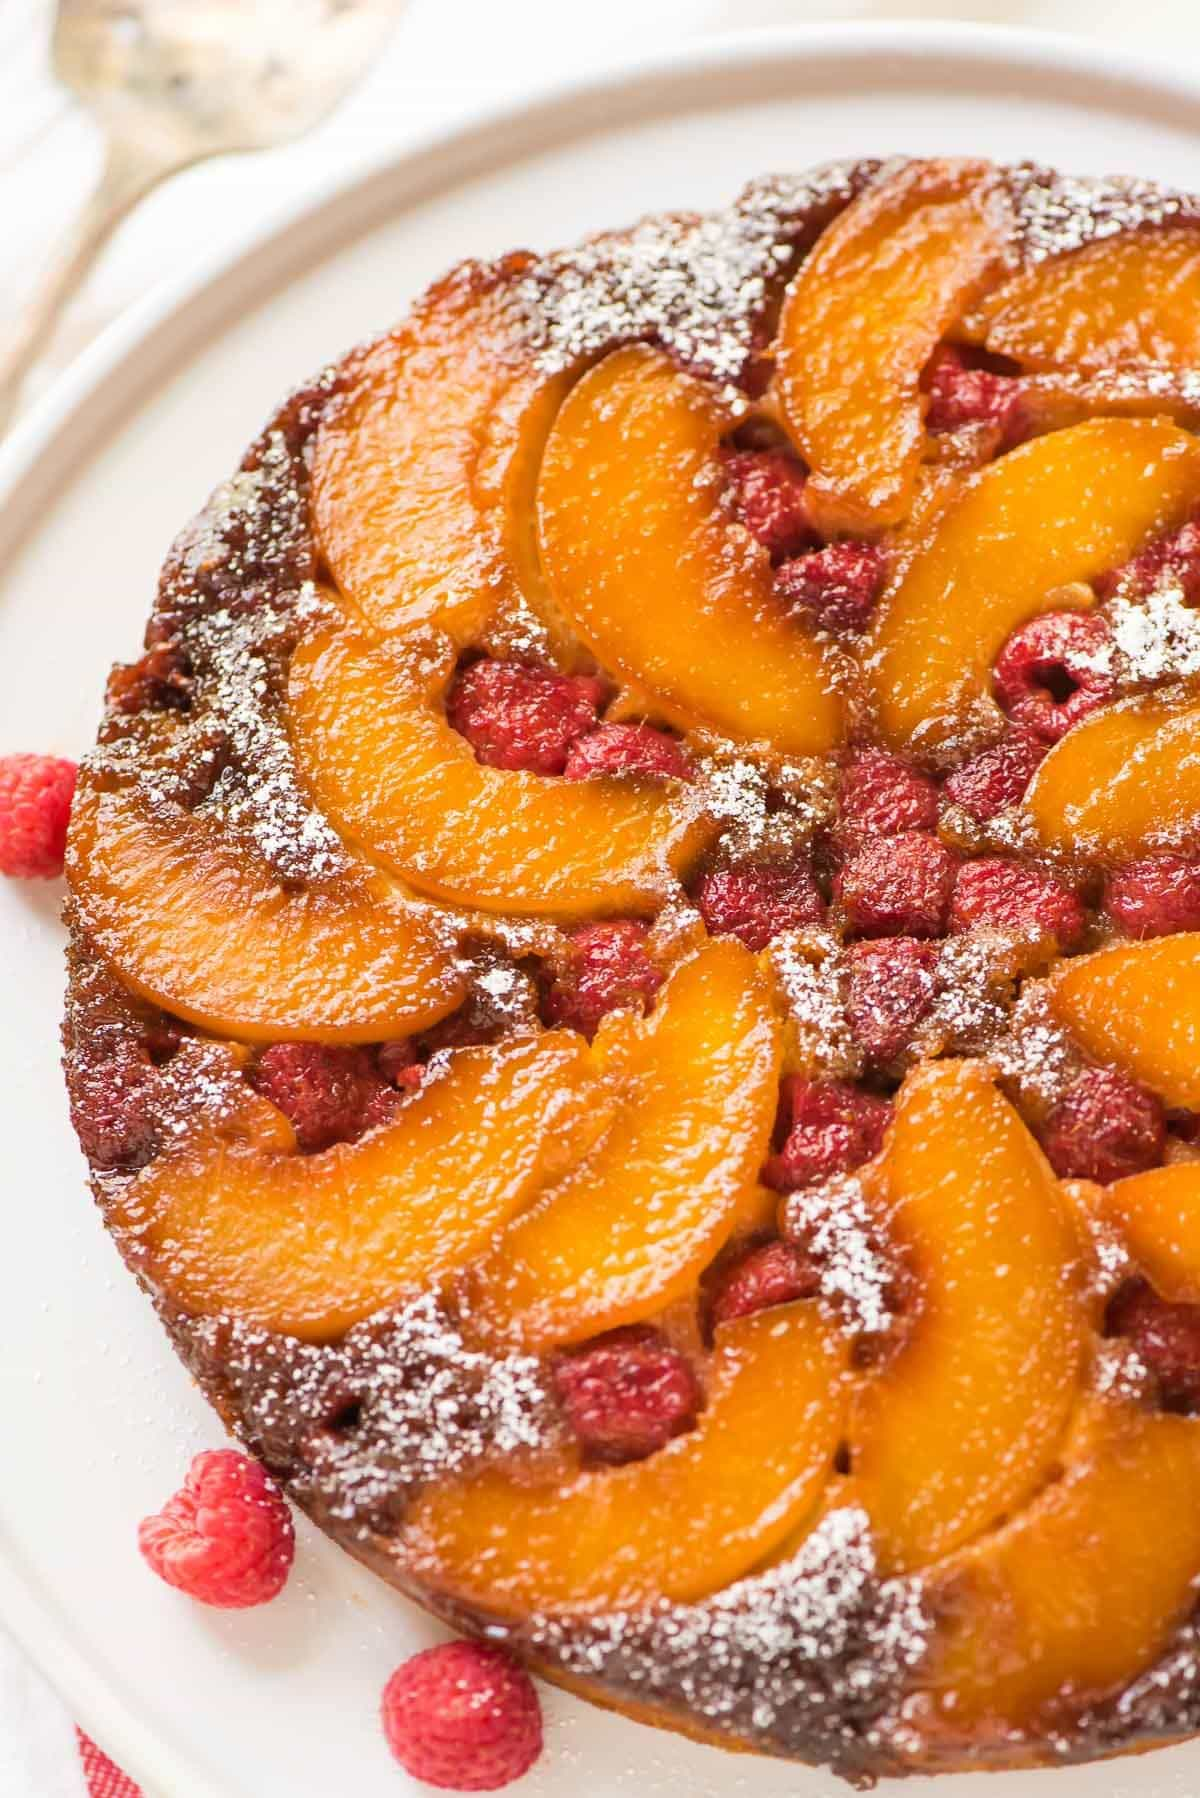 Easy Peach Upside Down Cake from scratch!